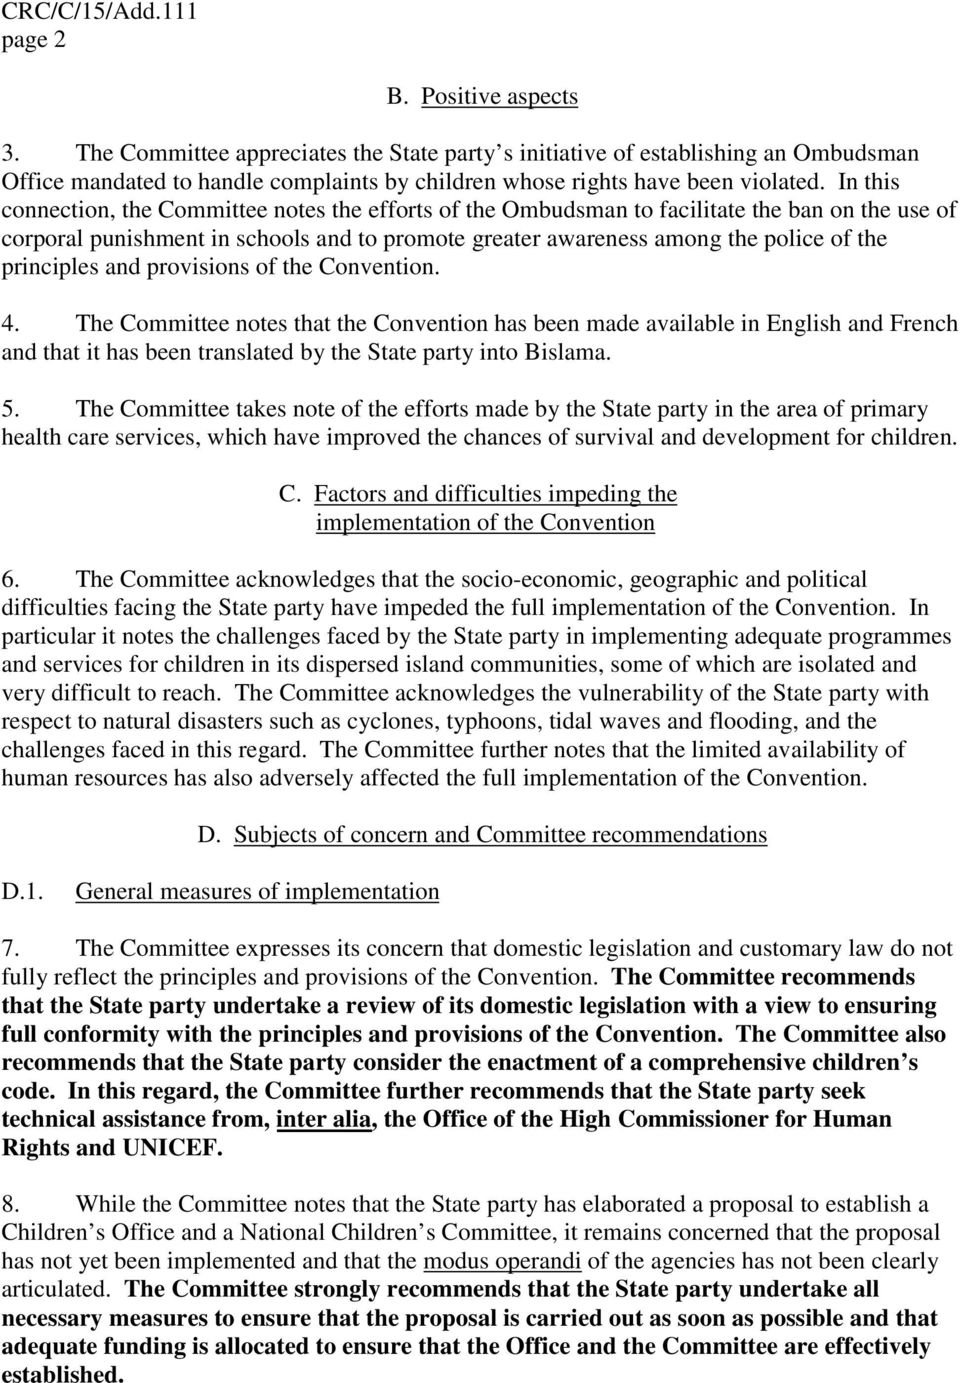 principles and provisions of the Convention. 4. The Committee notes that the Convention has been made available in English and French and that it has been translated by the State party into Bislama.